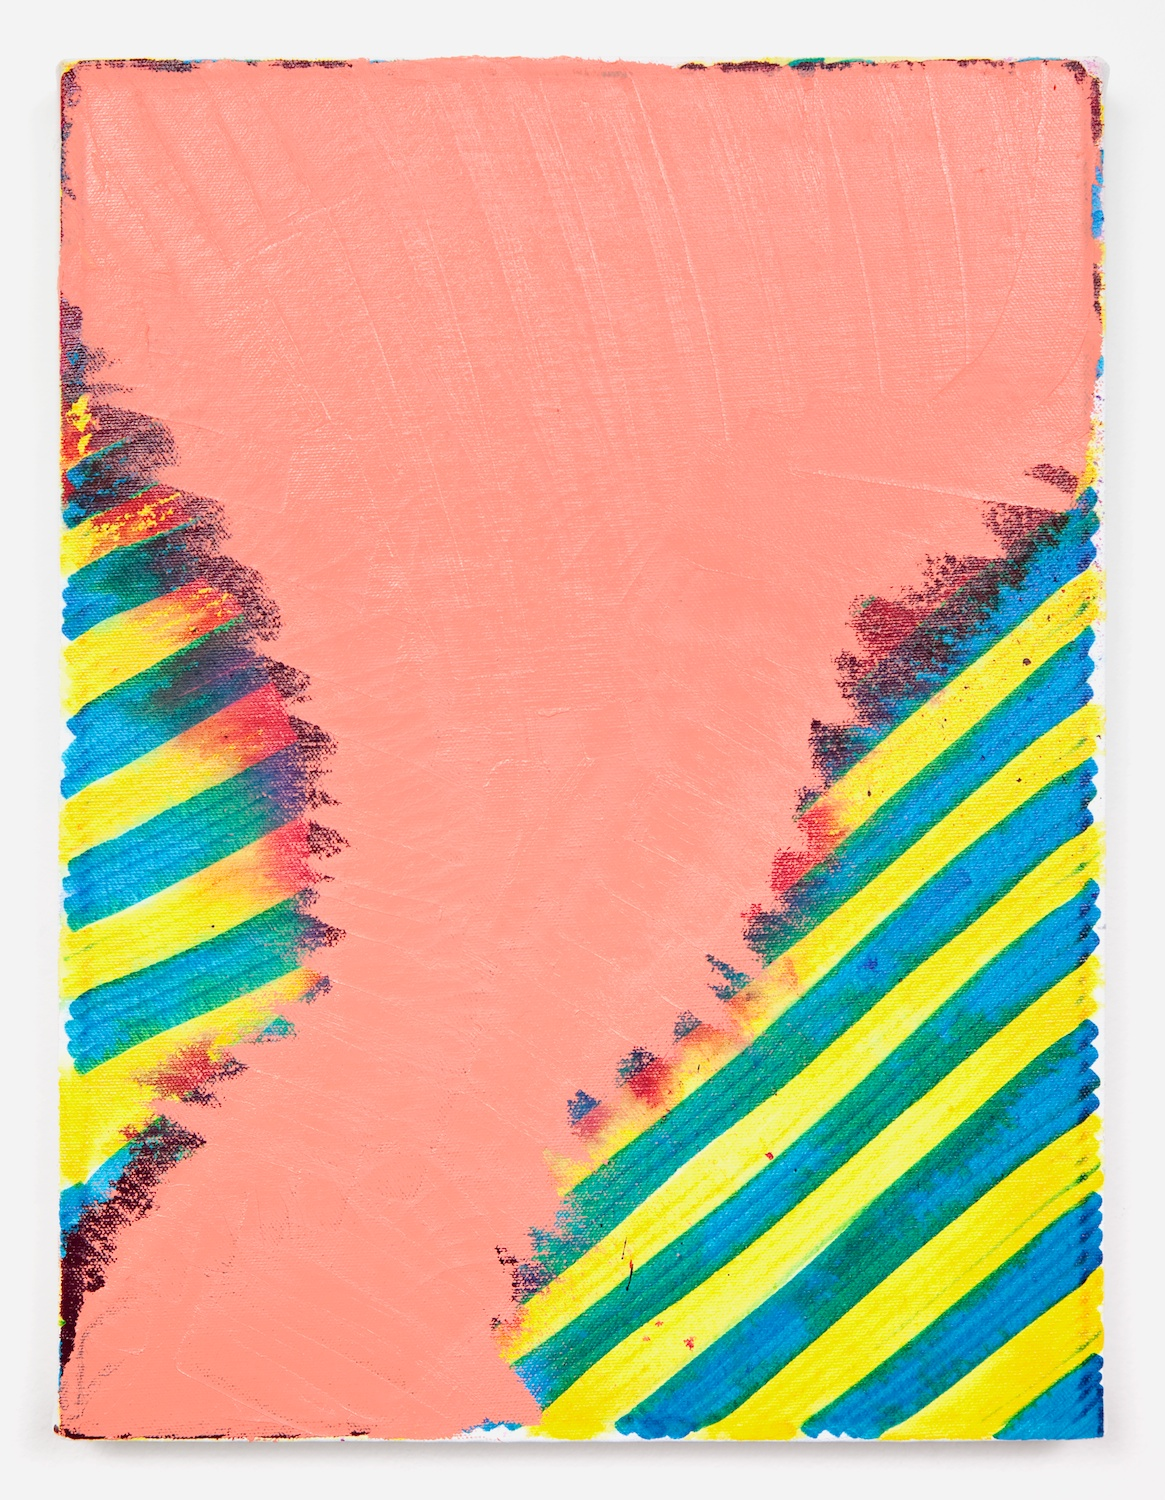 Joanne Greenbaum  Untitled  2011 Oil, acrylic and mixed media on linen 16h x 12w in JG036